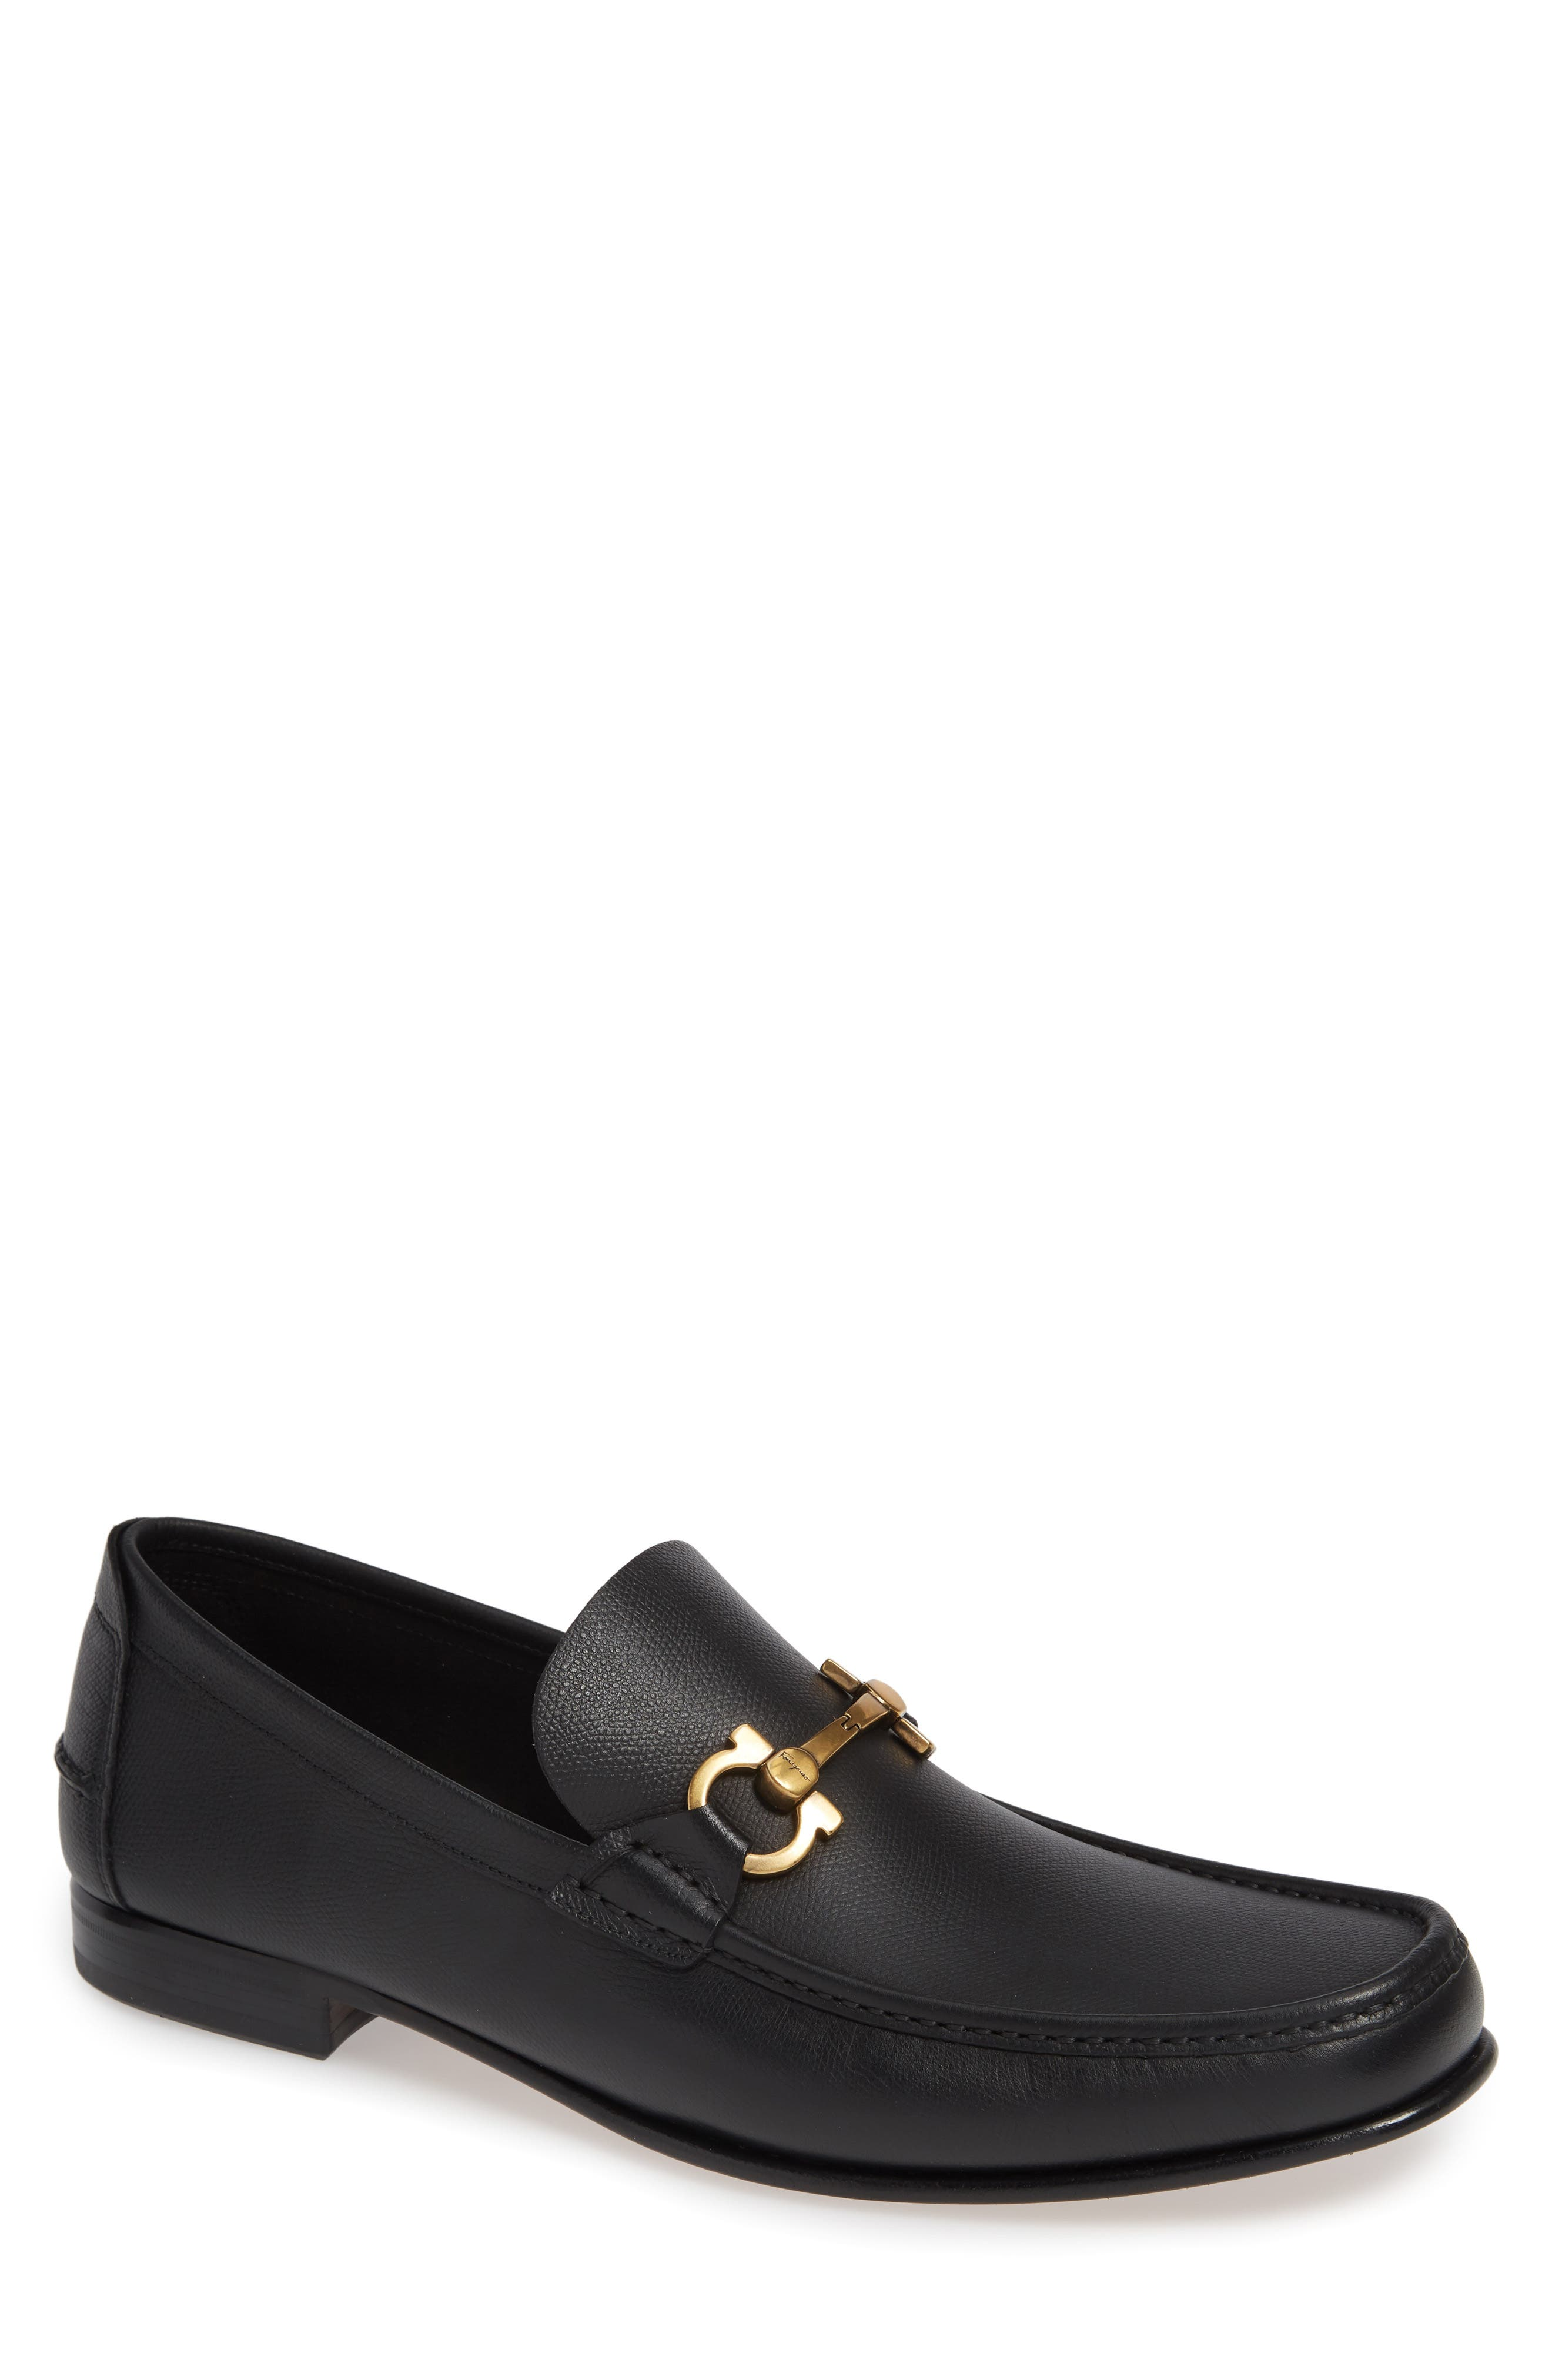 Fiordi Bit Loafer,                             Main thumbnail 1, color,                             NERO LEATHER